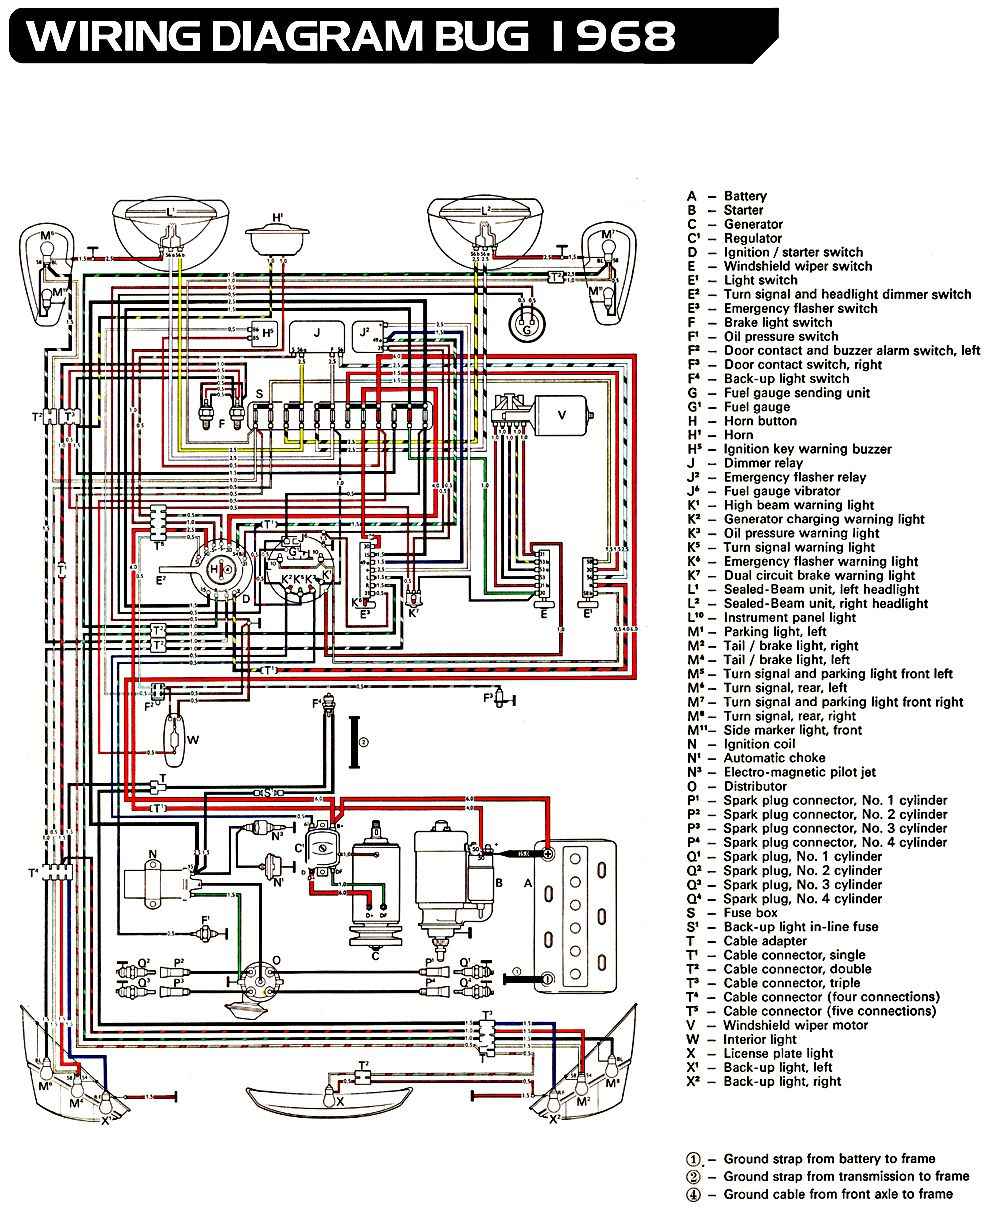 3a1908112d3826270ed5e3be362292bf vw bug ignition wiring diagram 73 vw wiring diagram free vw beetle wiring harness routing at aneh.co